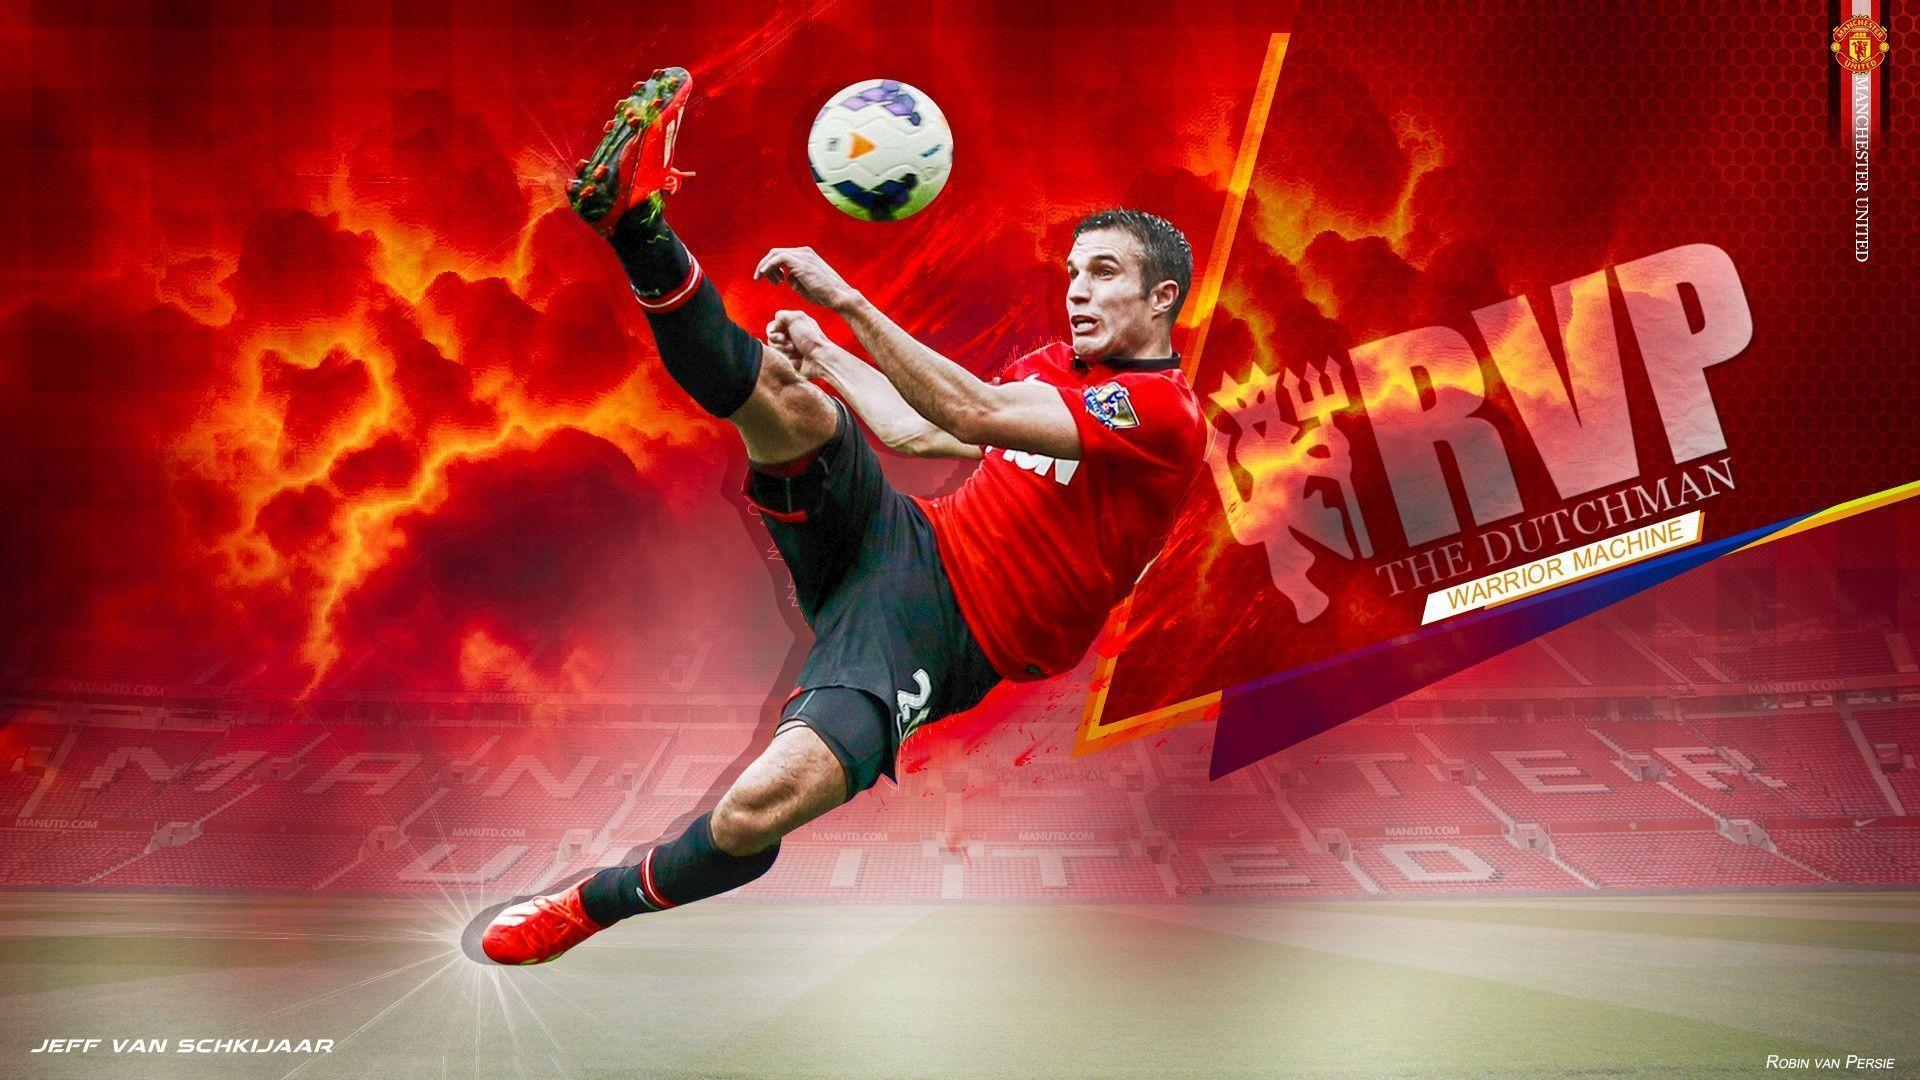 Manchester United Van Persie 2014 RVP MUFC football wallpapers